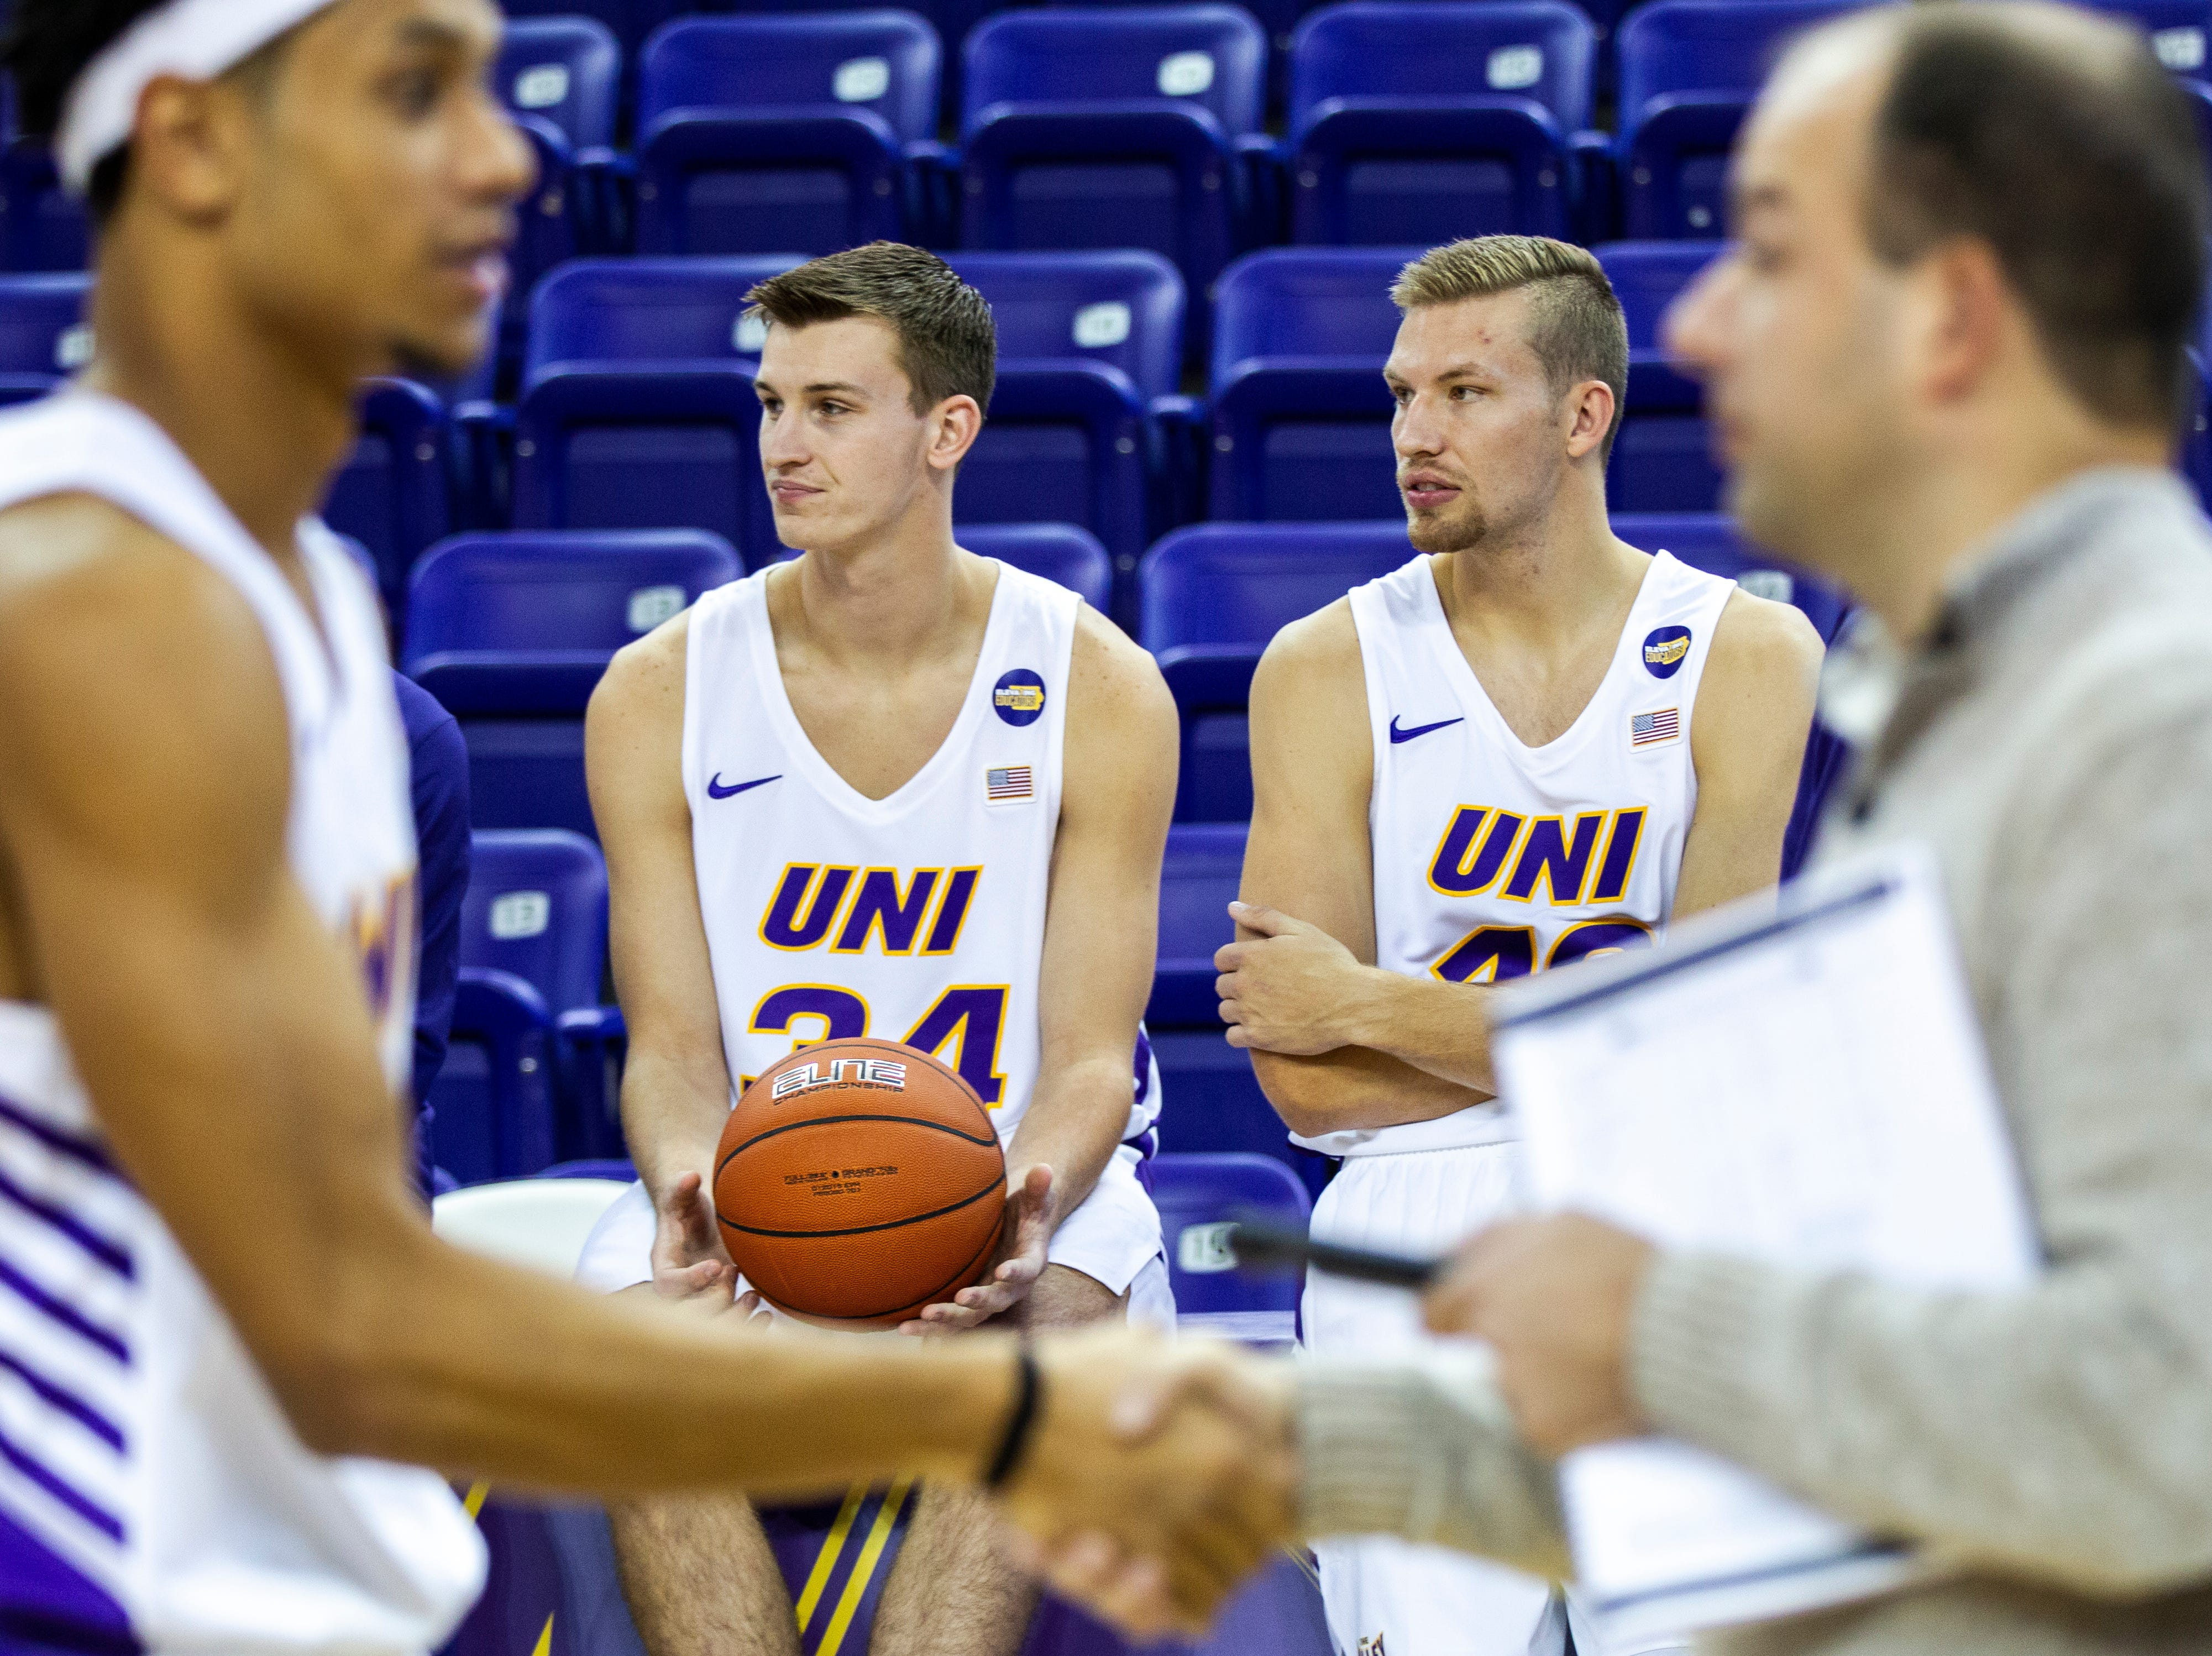 Northern Iowa forwards Luke McDonnell (34) and Lincoln Conrey (12) sit on the scorers table during Panthers men's basketball media day on Wednesday, Oct. 17, 2018, at the McLeod Center in Cedar Falls.